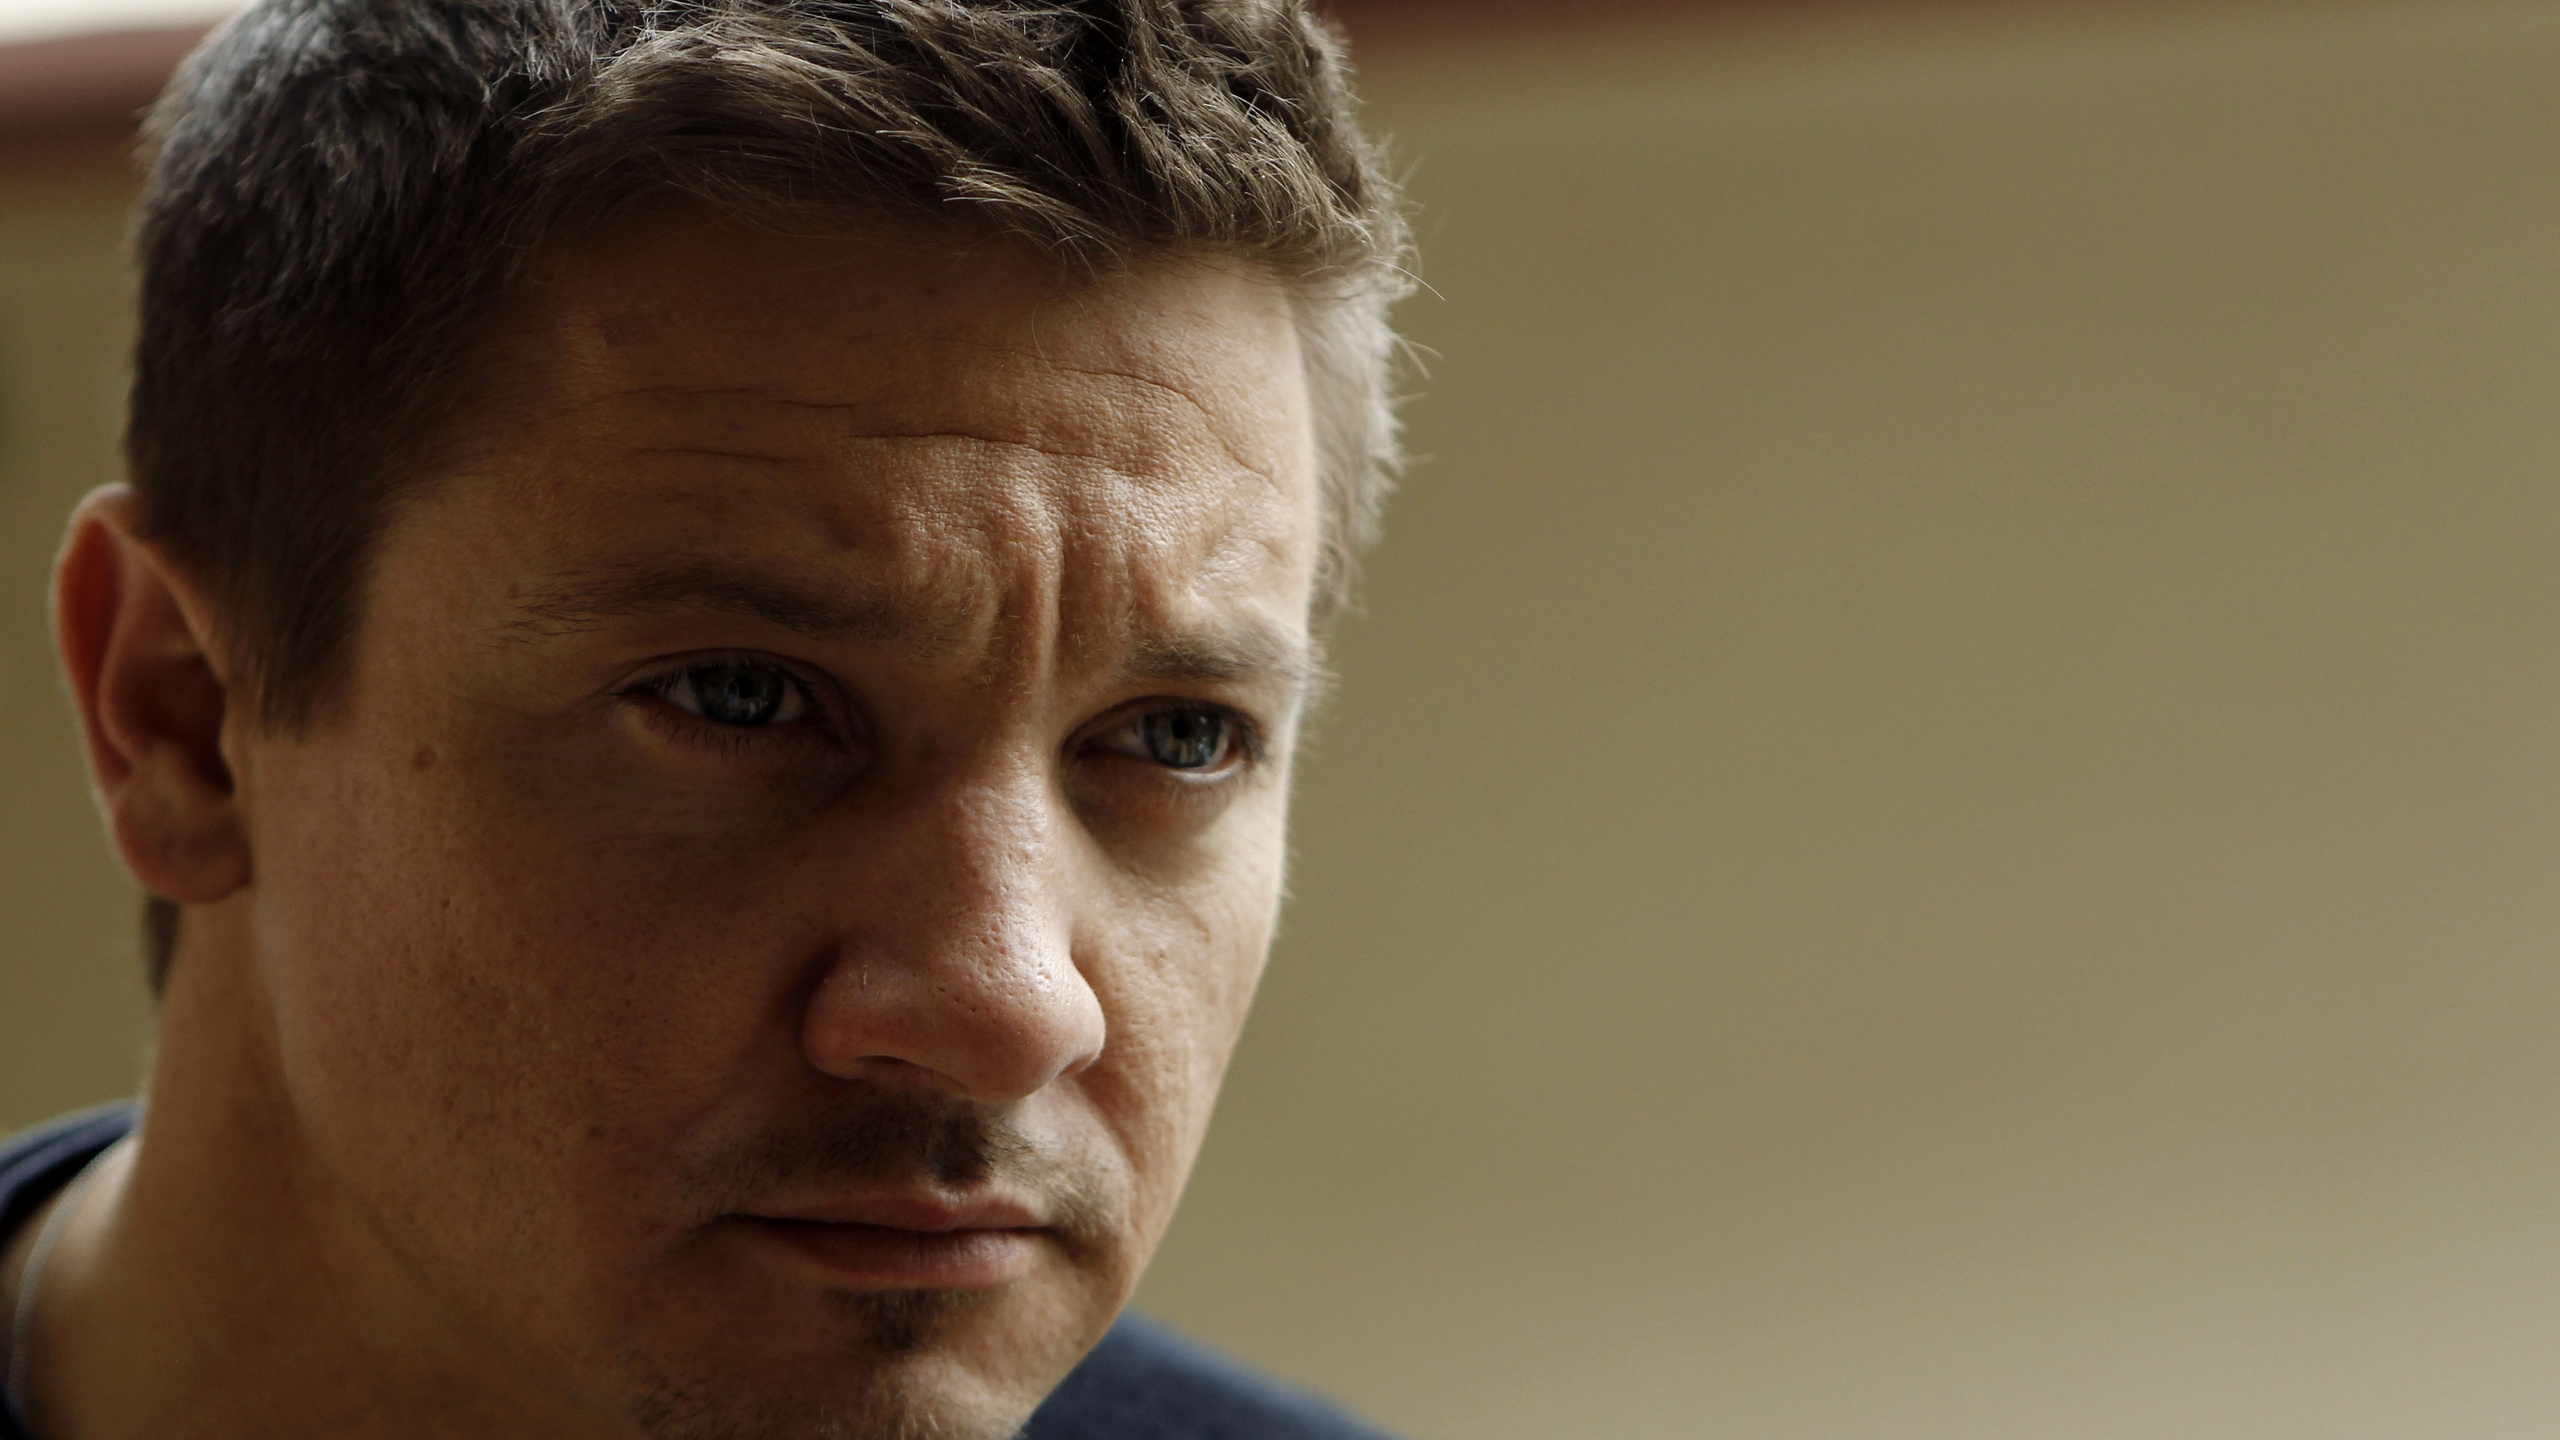 Jeremy Renner Close Up for 2560x1440 HDTV resolution